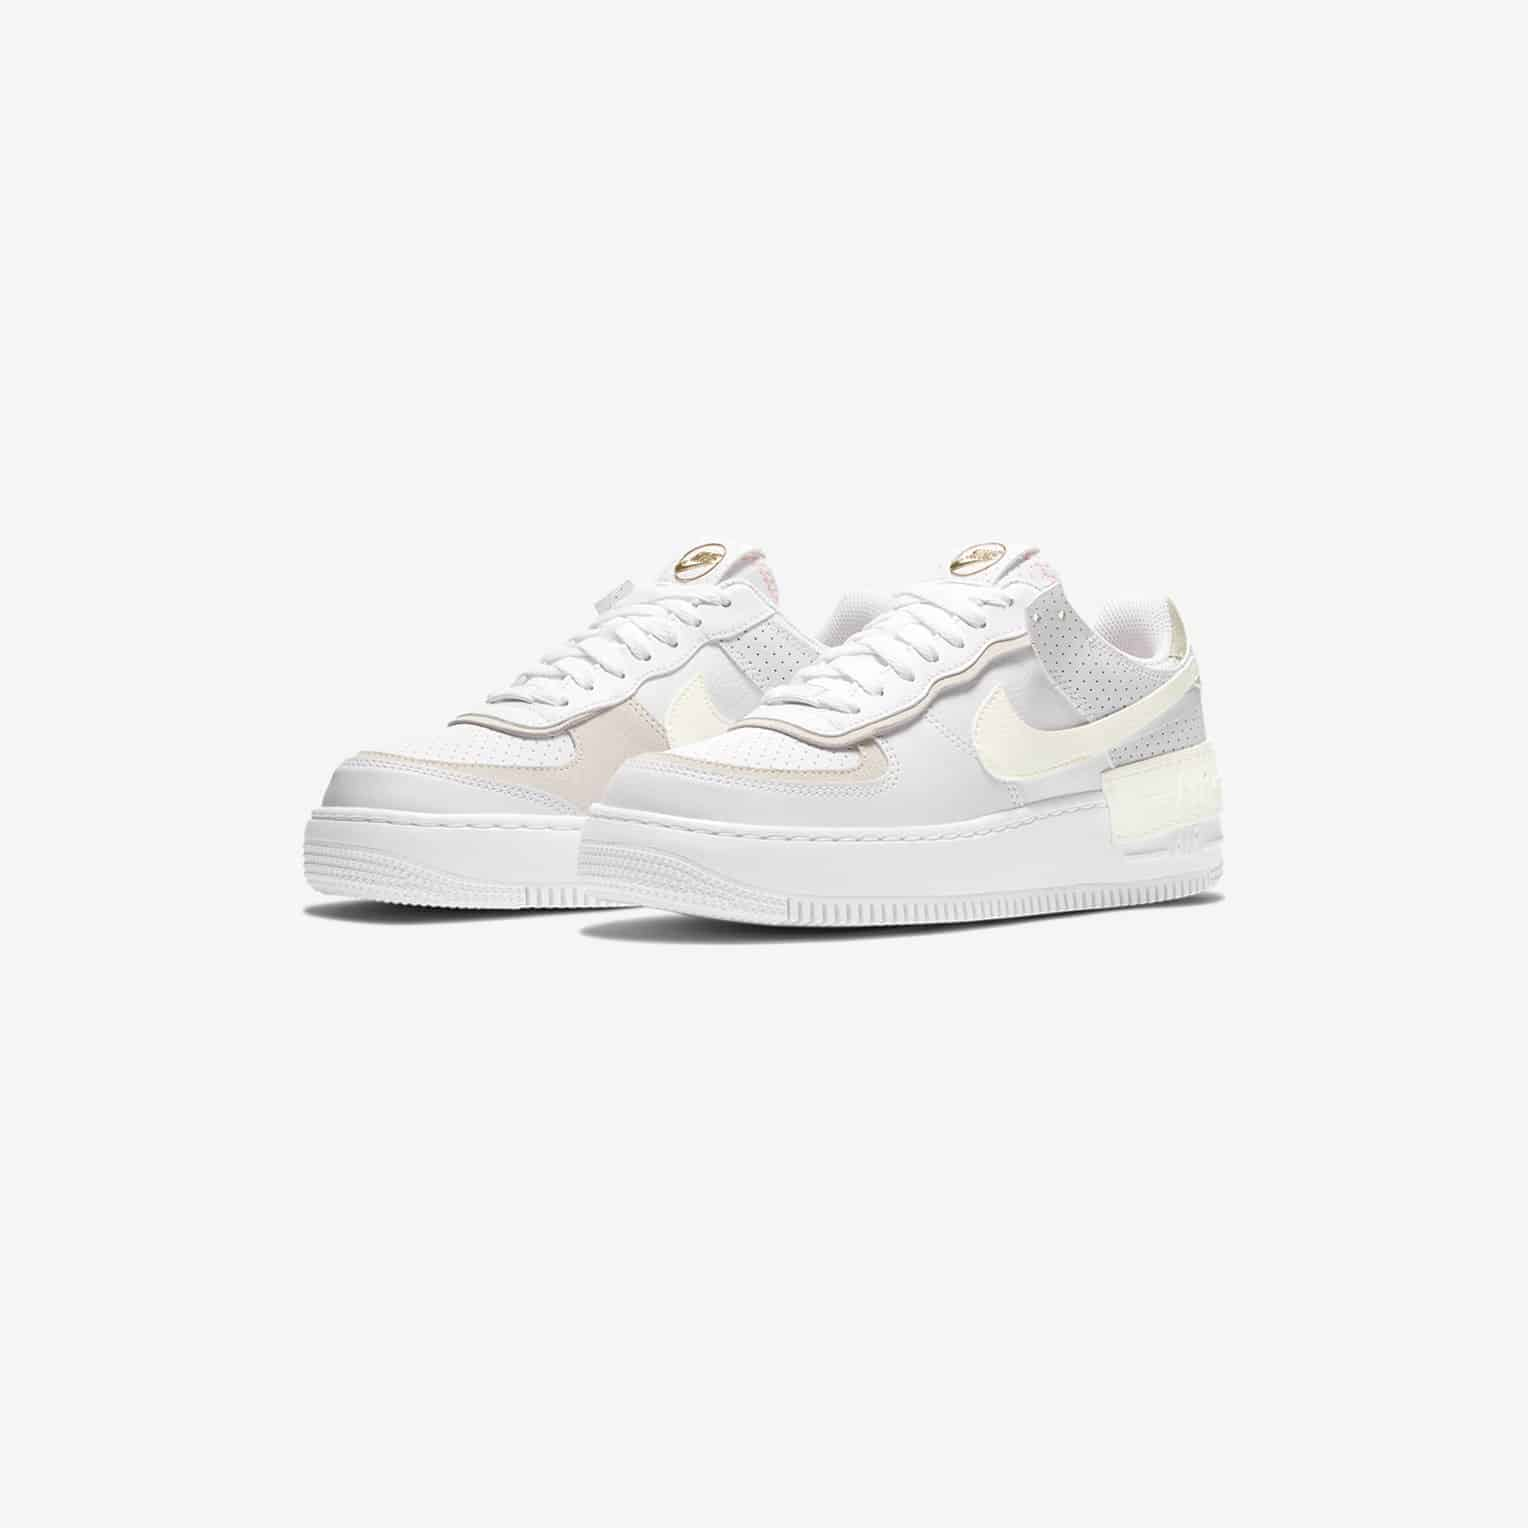 Nike Air Force 1 Shadow White Atomic Pink Neoteric Official Slightly lifted midsole for a touch of in order to navigate out of this carousel please use your heading shortcut key to navigate to the next or previous heading. nike air force 1 shadow white atomic